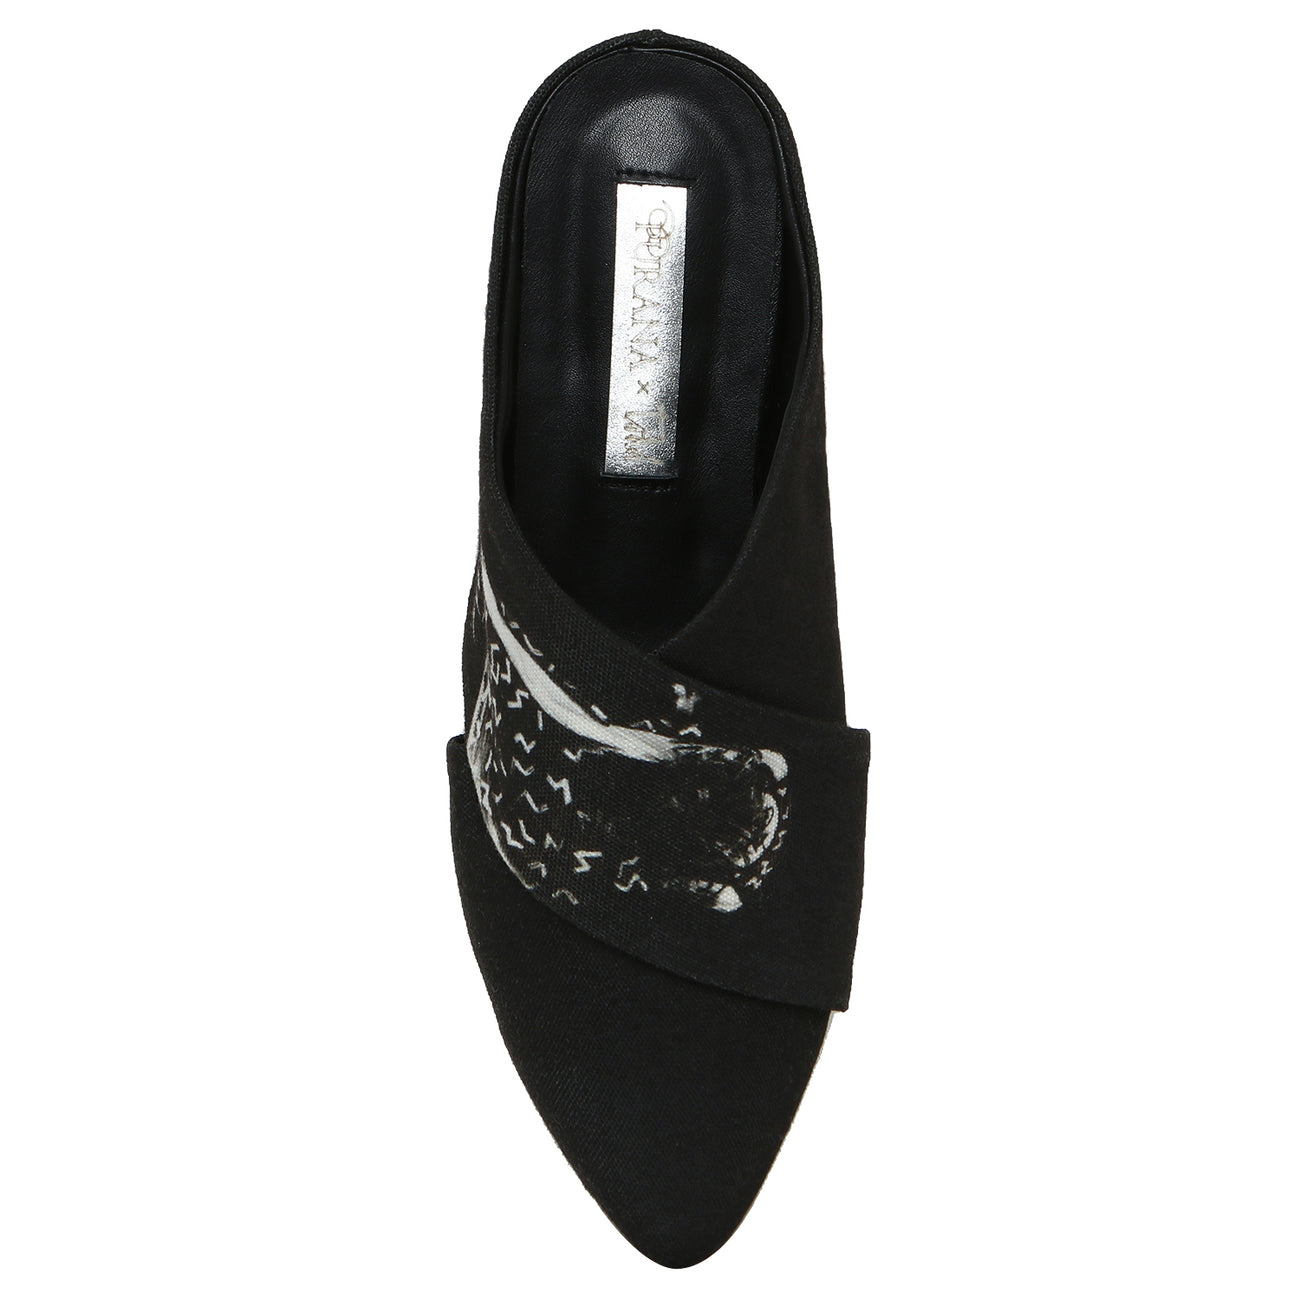 Purana X Geoff Todd Black Pointed Toe Canvas Mules